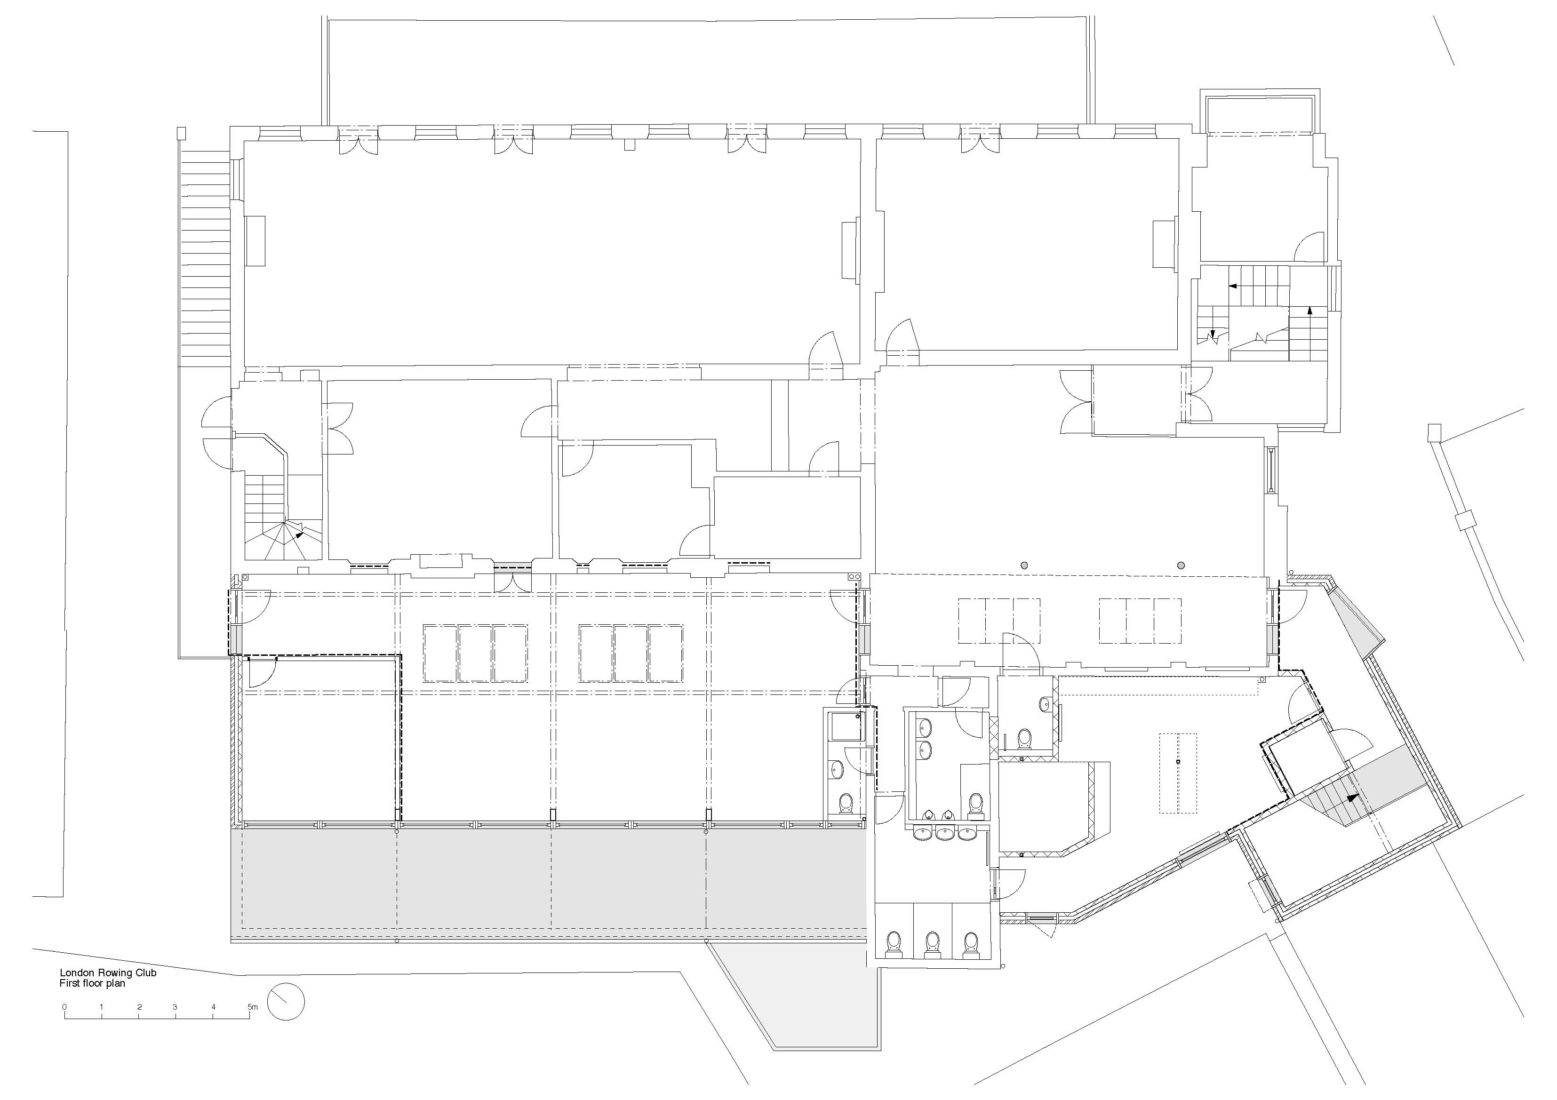 London Rowing Club first floor plan